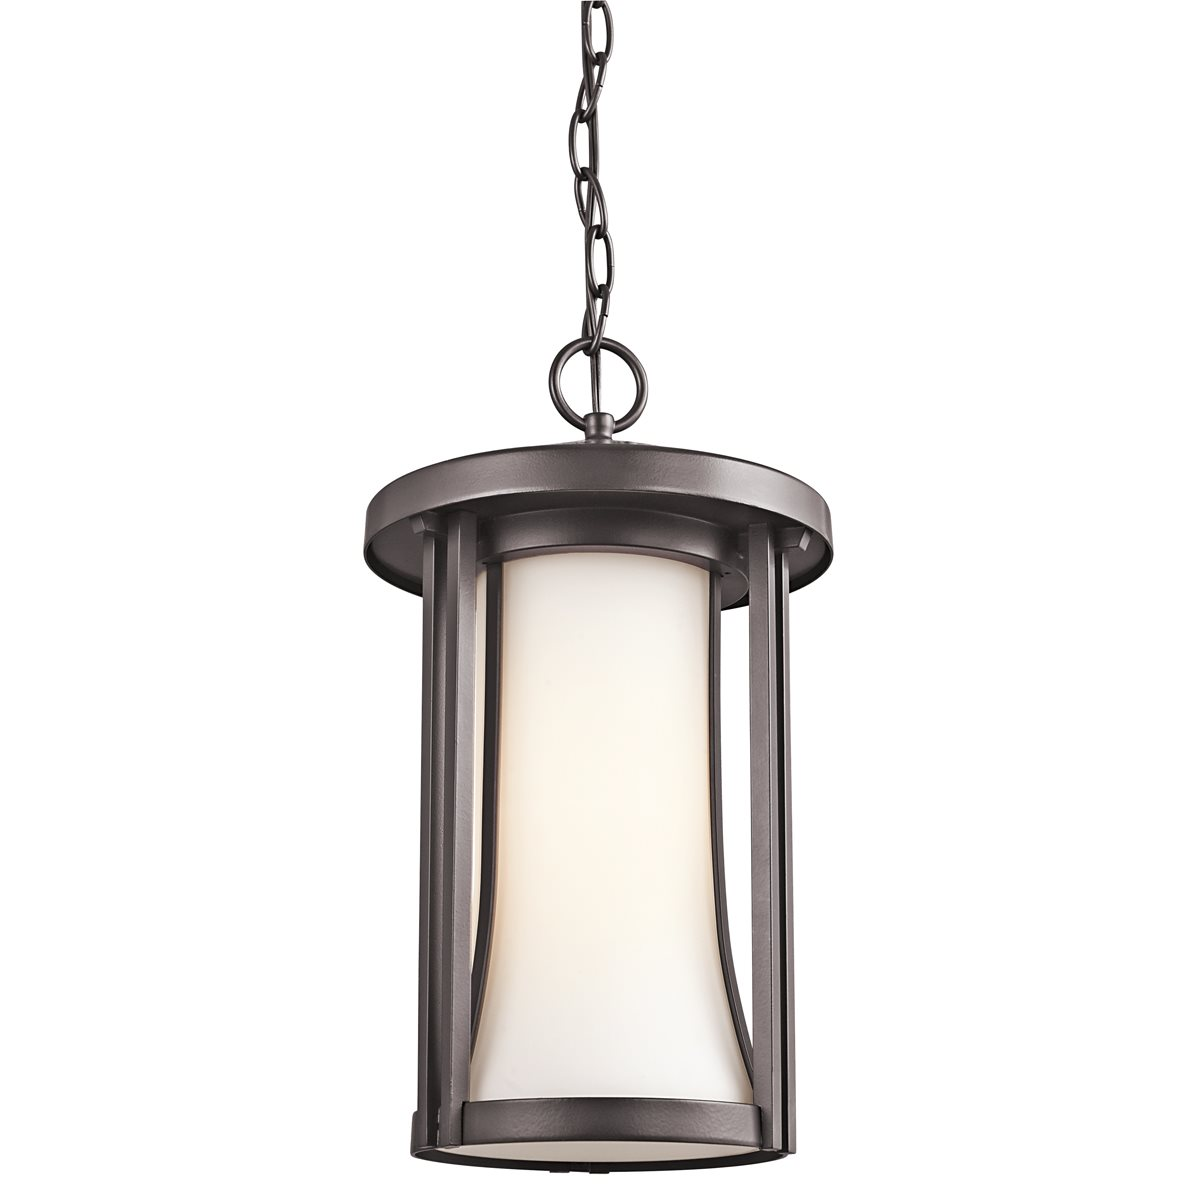 Tiverton Modern Contemporary Outdoor Hanging Light